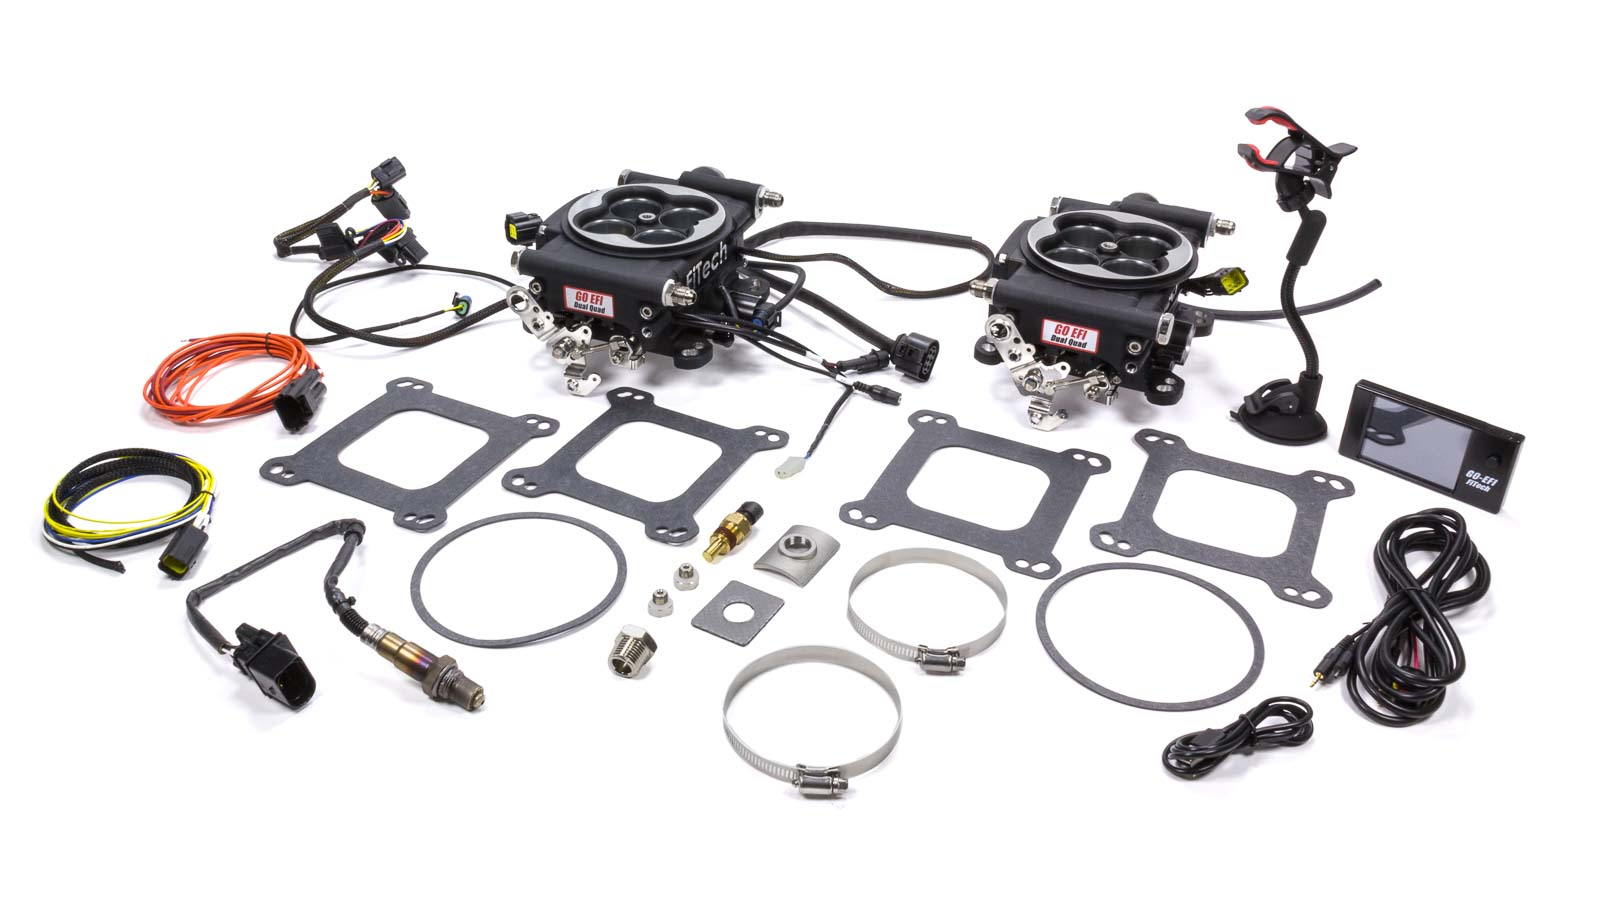 GO EFI 2x4 625hp Kit Matte Black